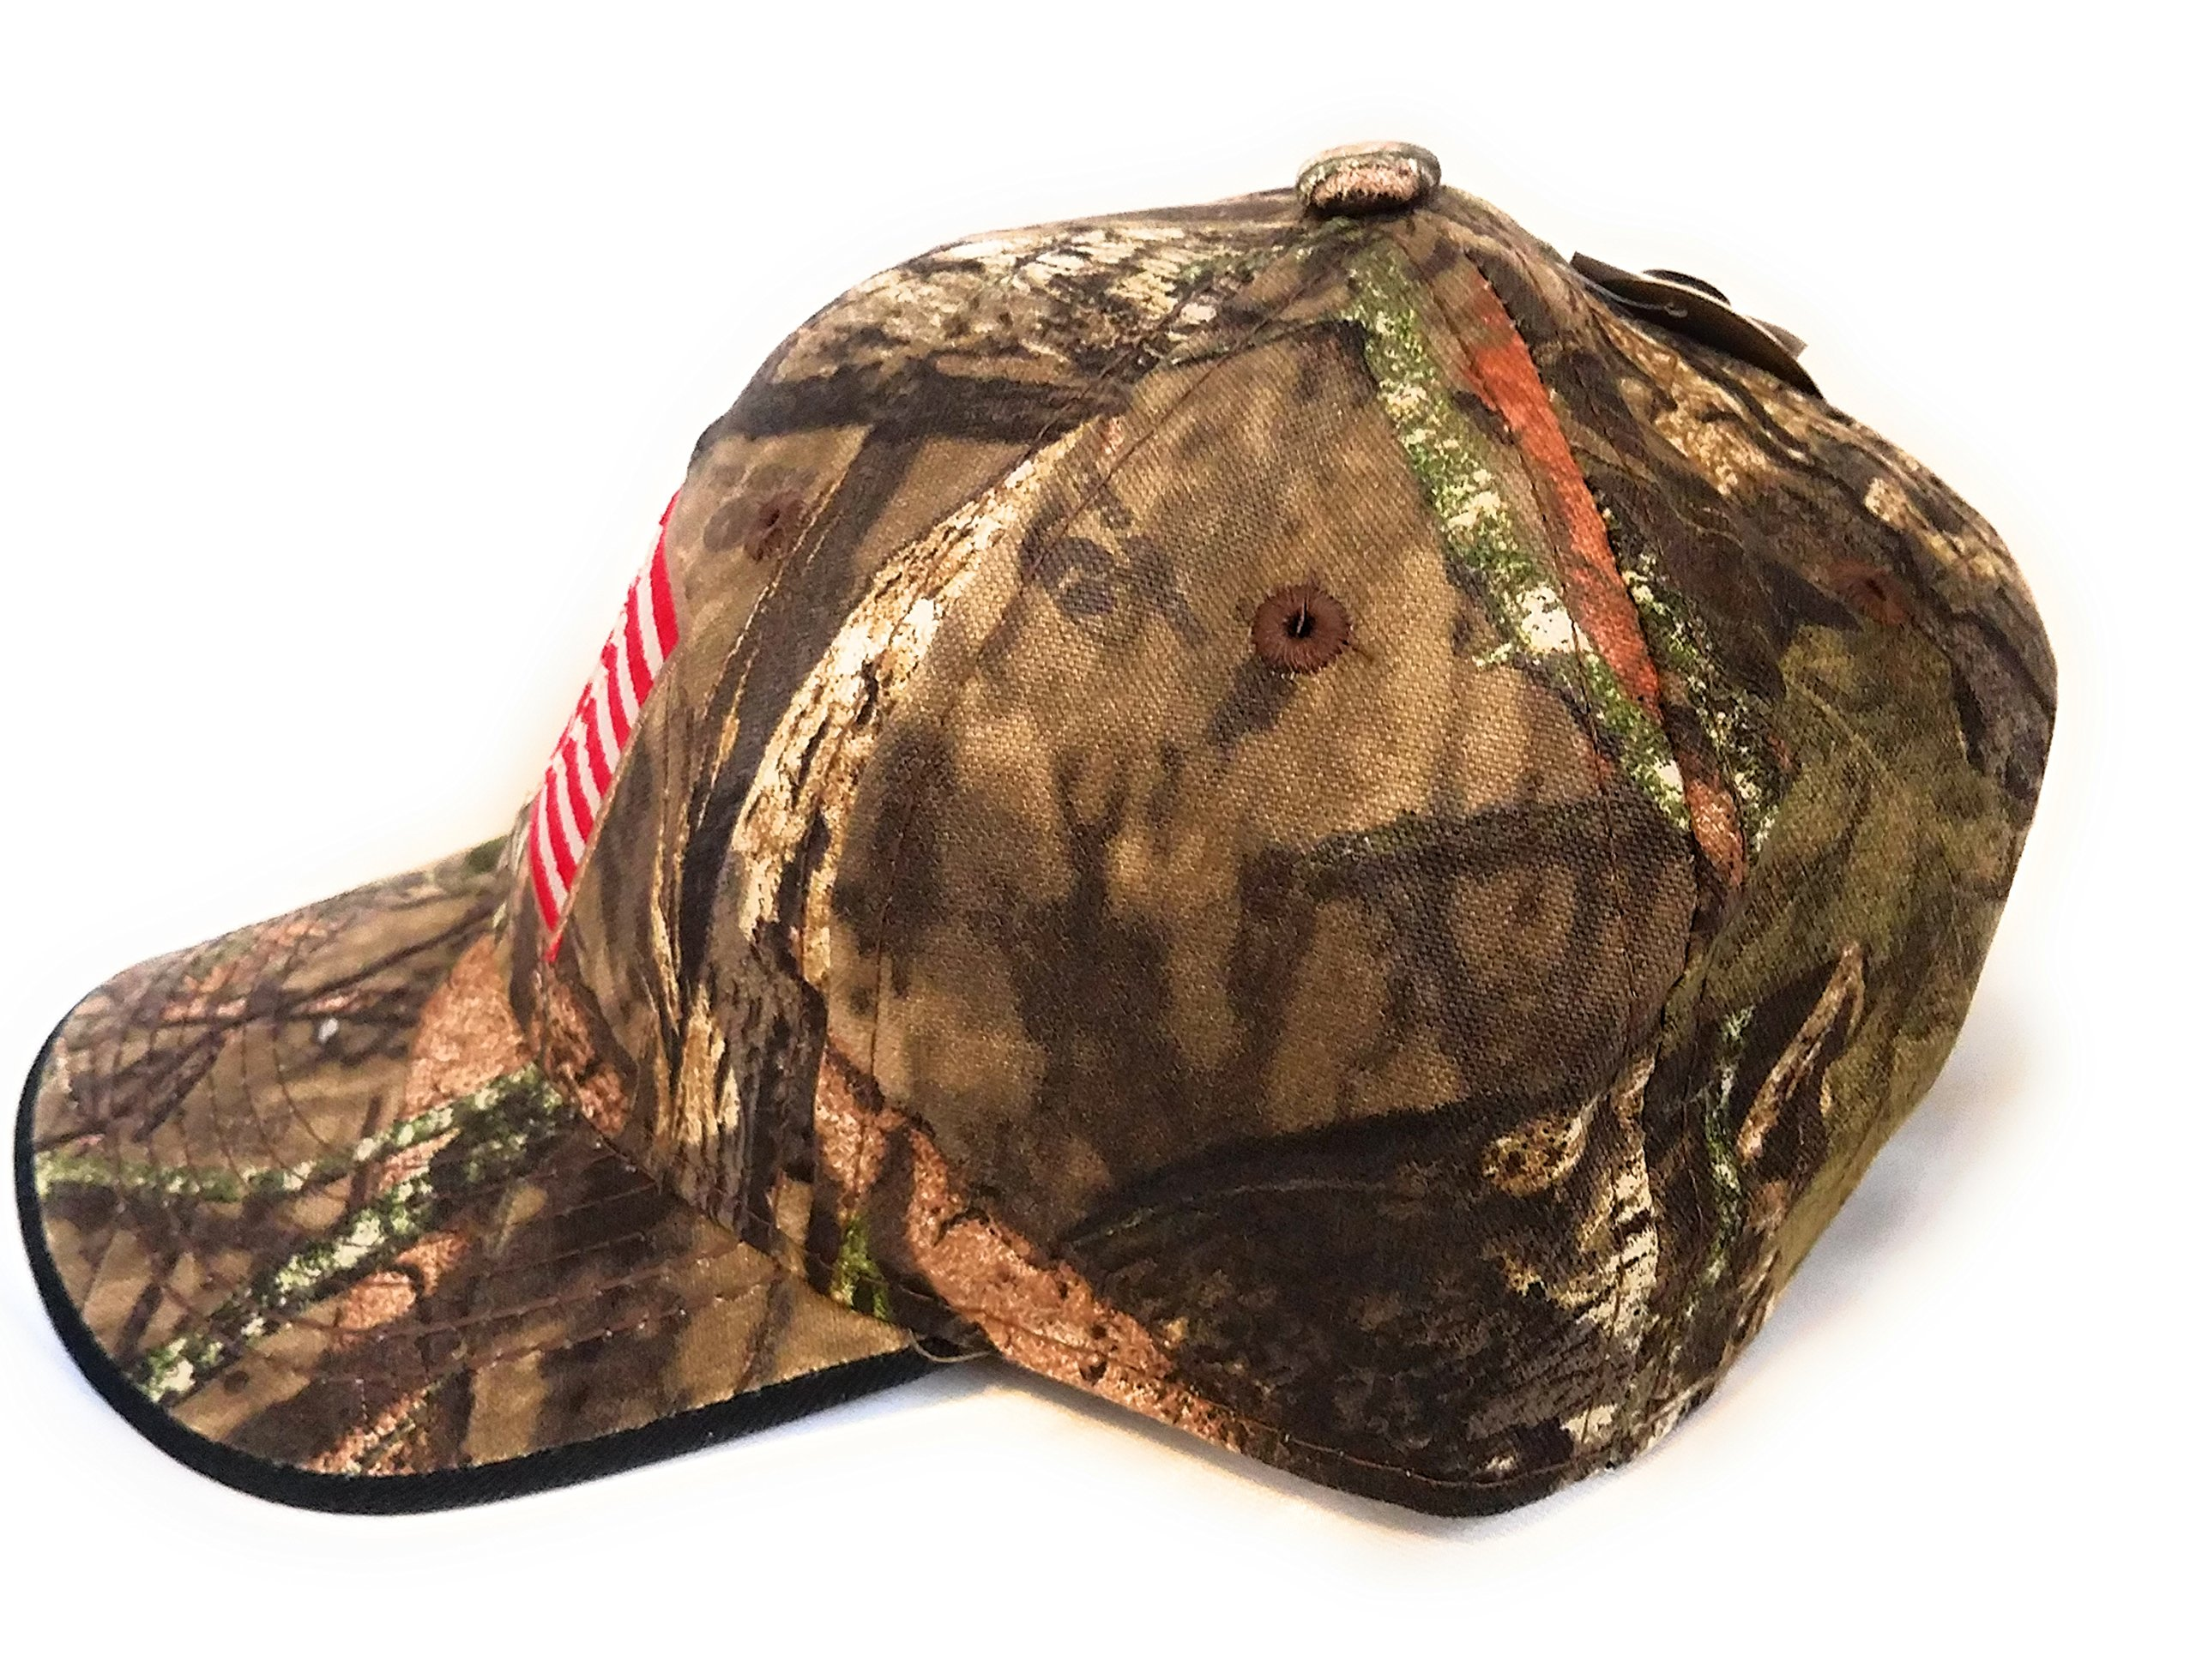 Mossy Oak Camping, Hunting, Outdoors American Flag Camo Cap, Army Military Camo Cap Baseball, Camouflage Hat by Mossy Oak (Image #4)